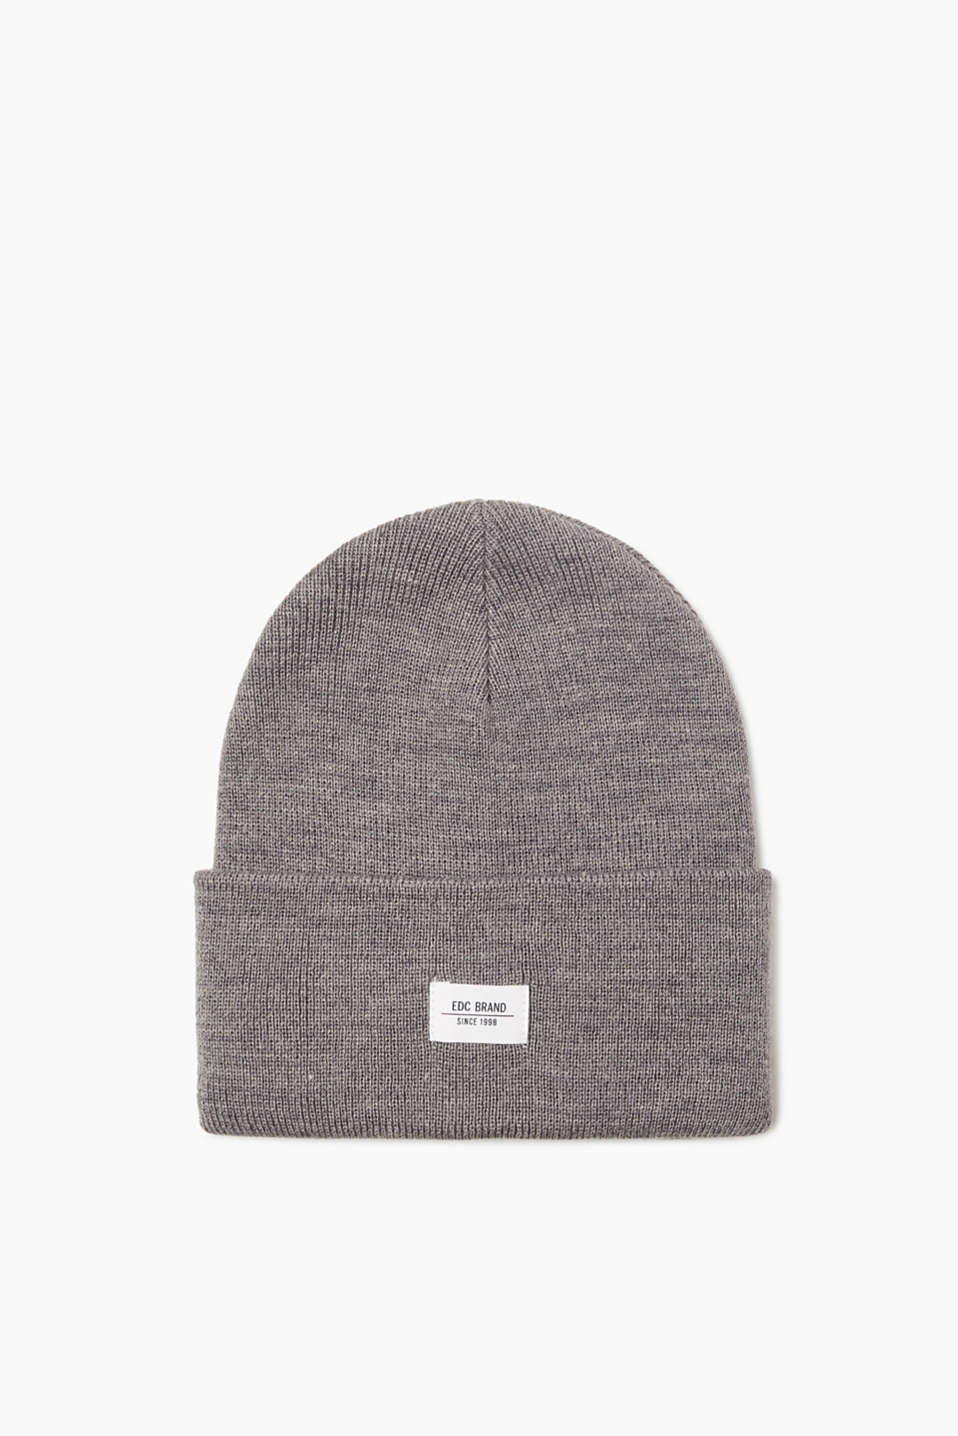 An urban classic! Mottled beanie in high-quality ribbed knit with a logo appliqué